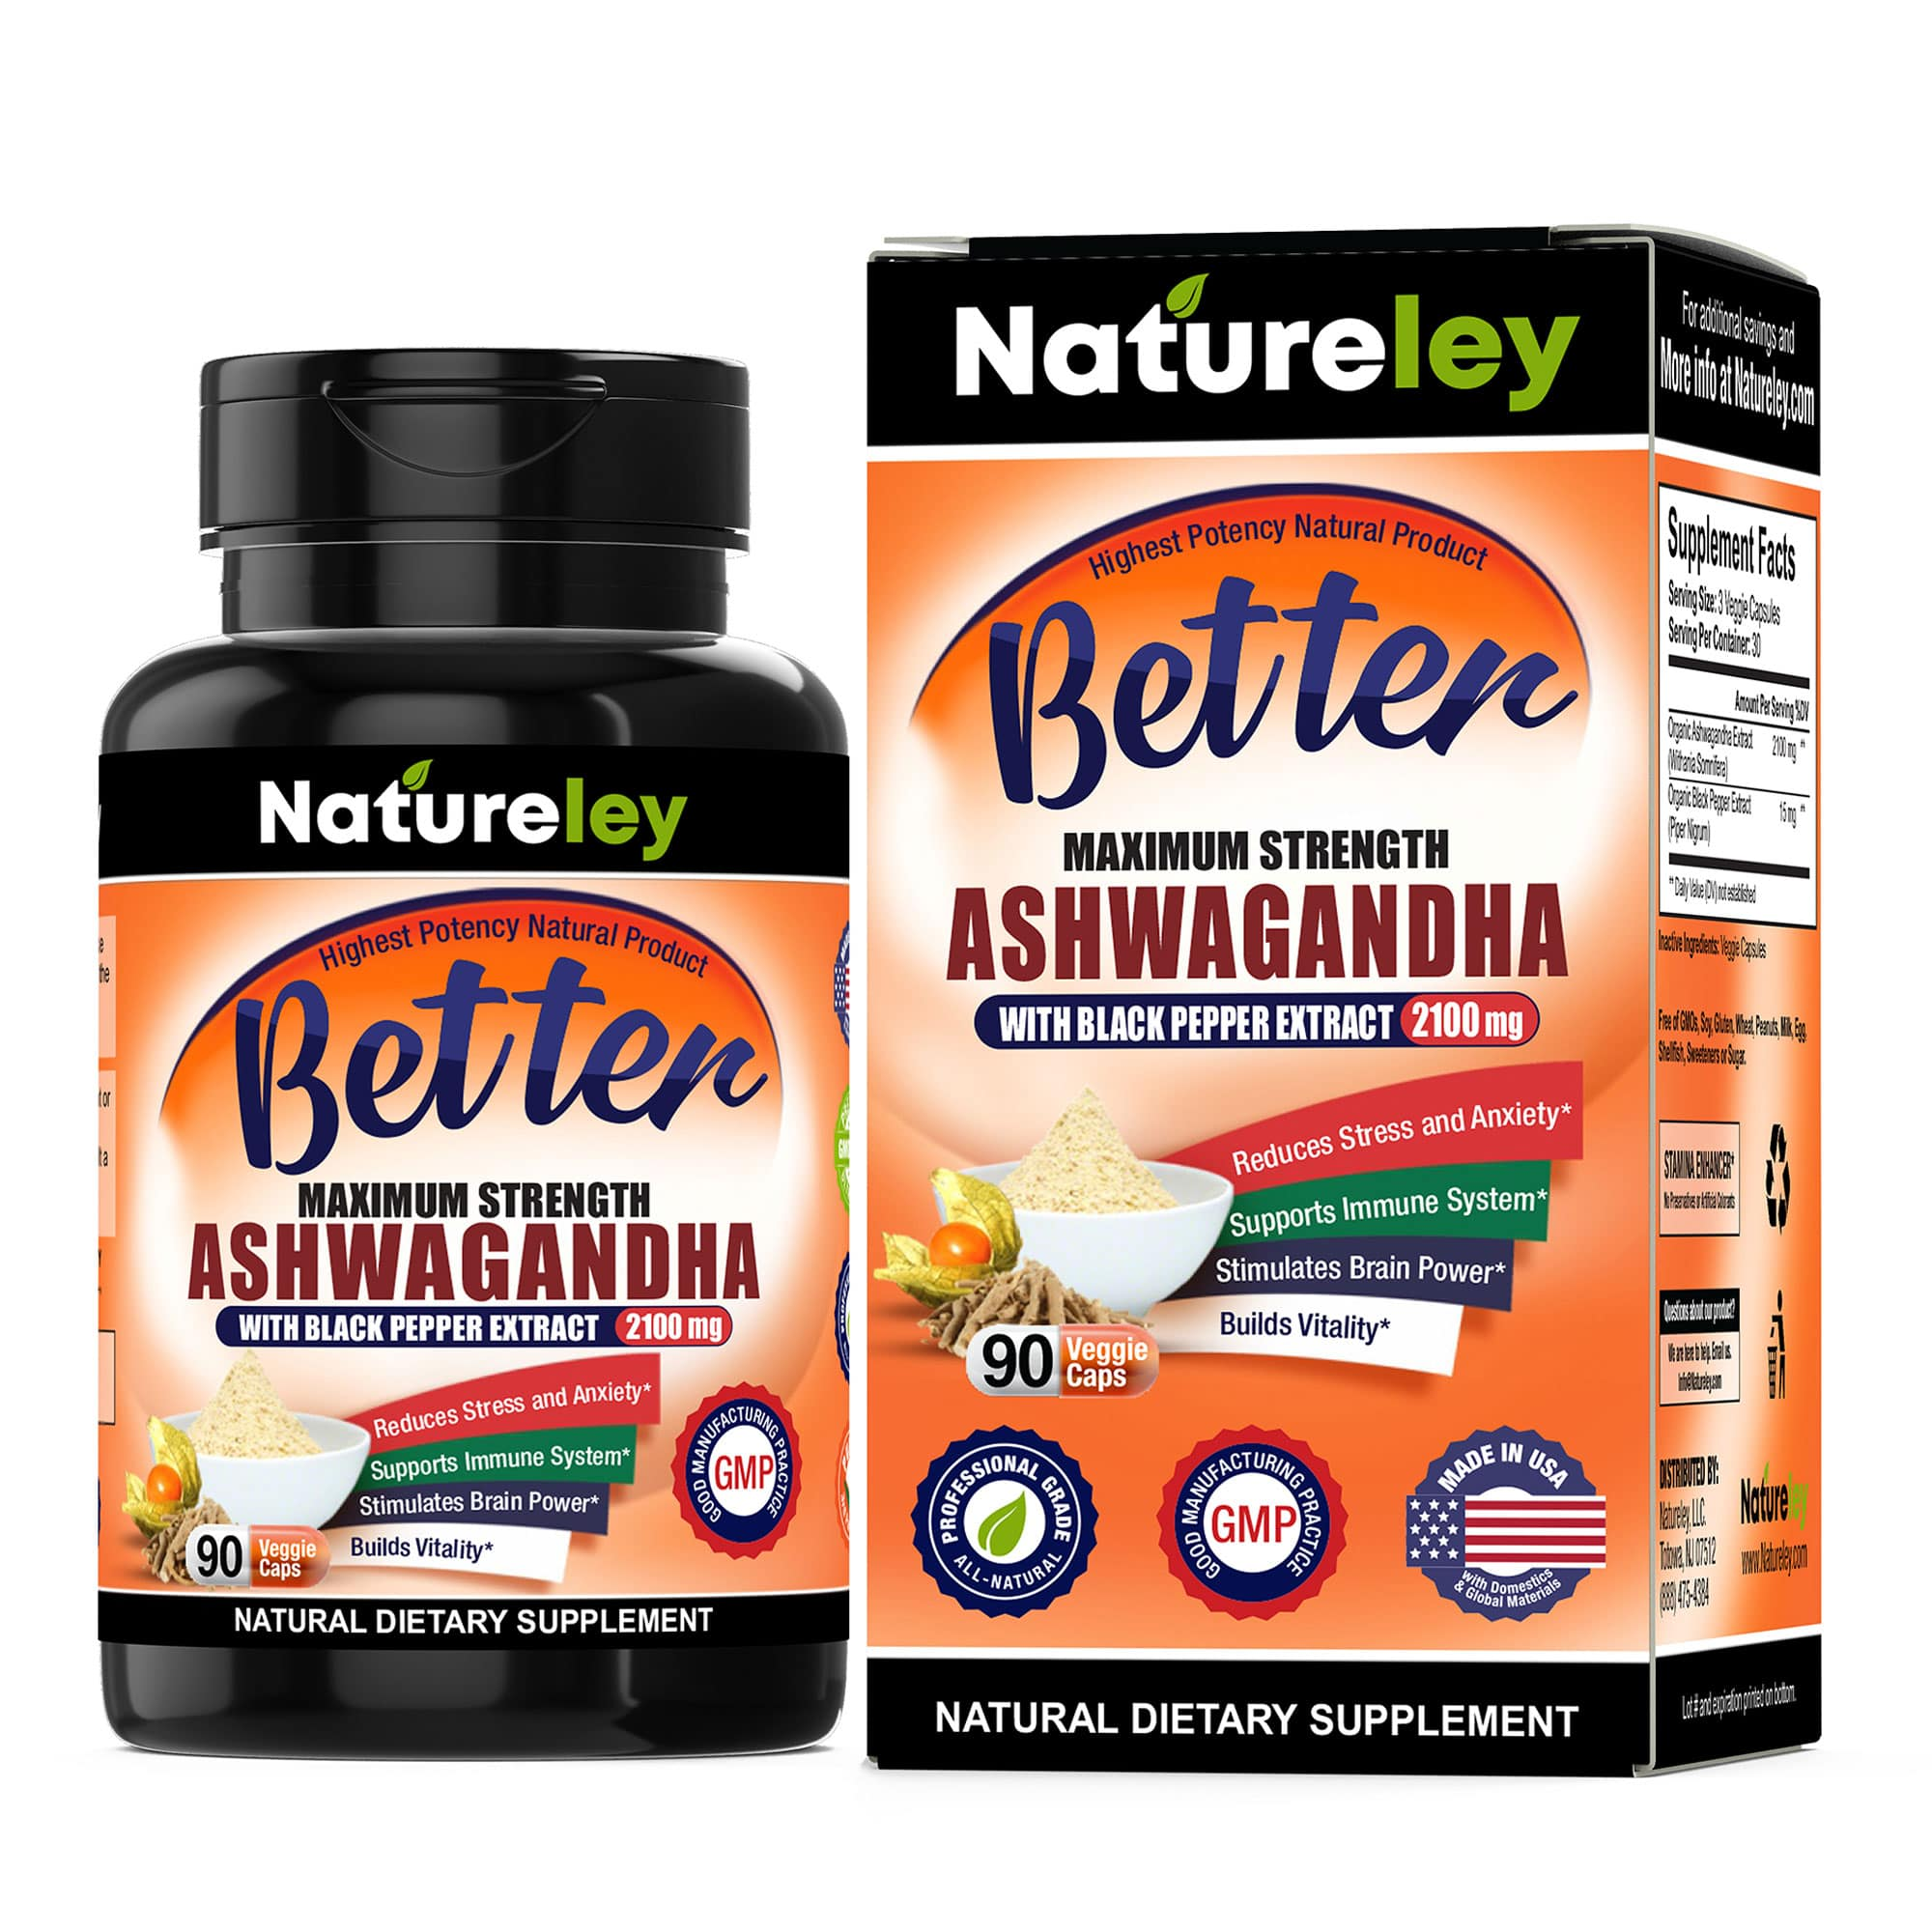 Organic Ashwagandha with Black Pepper Extract - 2100 mg 90 Caps